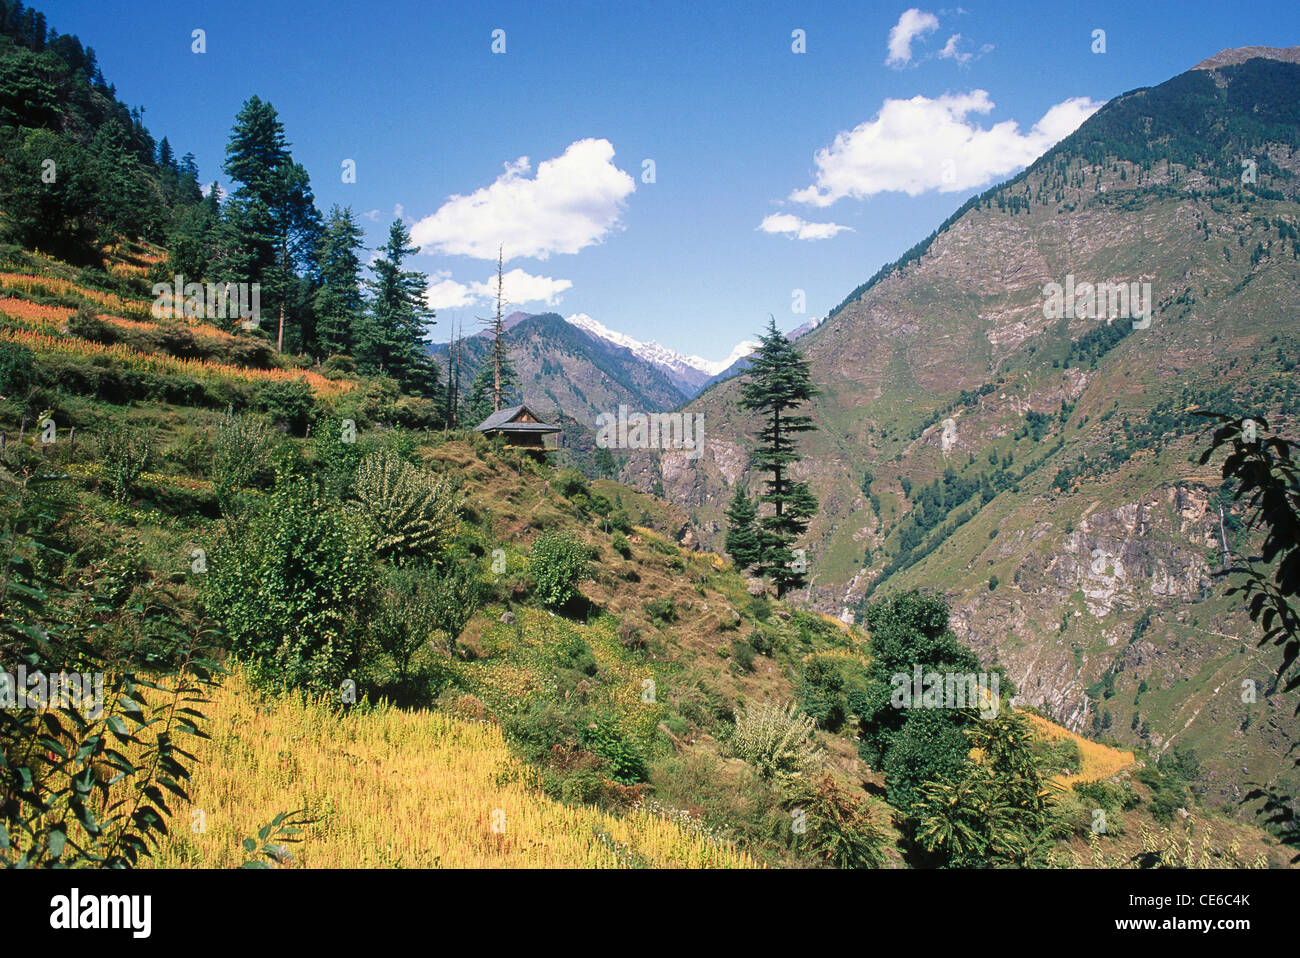 landscape mountains trees. landscape mountains green pine trees blue sky white clouds sangla valley himachal pradesh india d